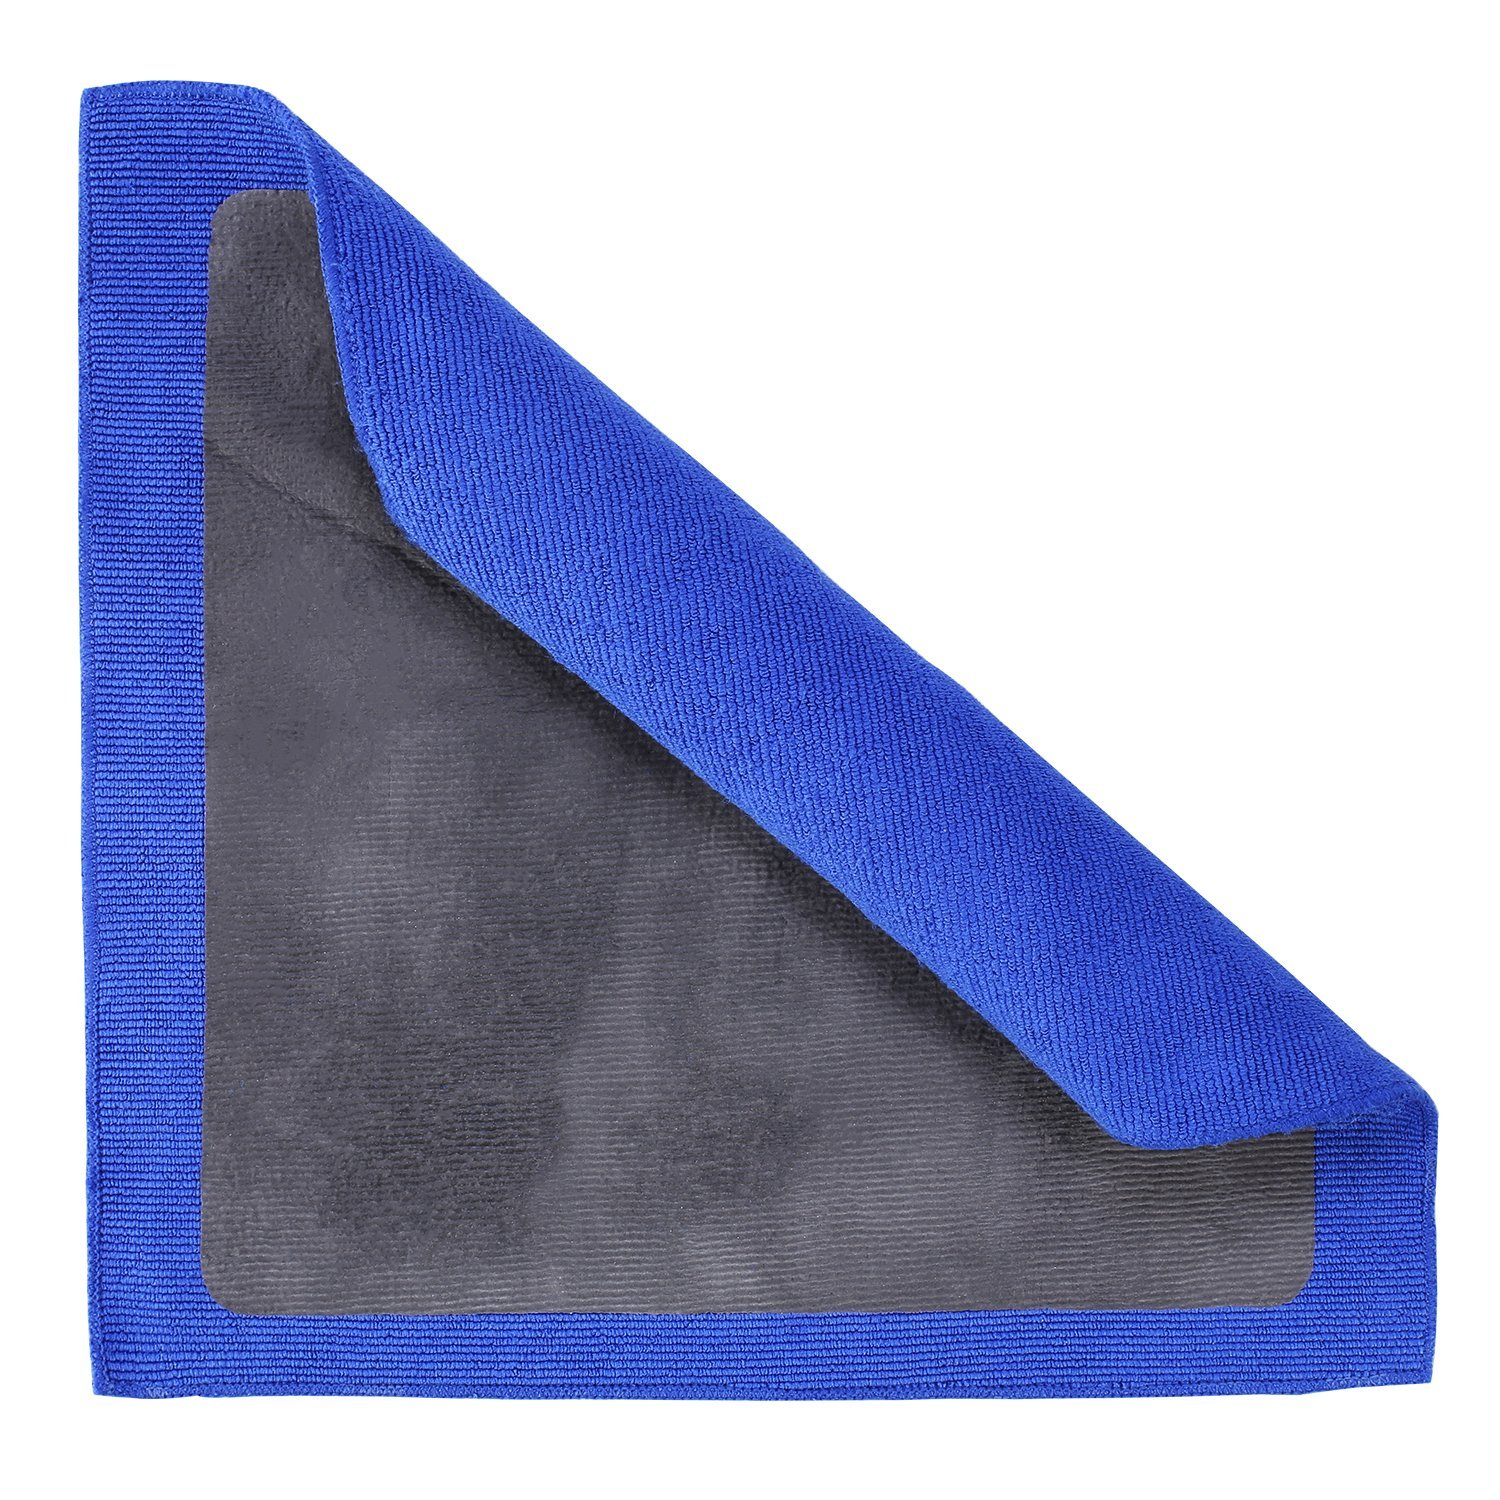 JIANFA Clay Towel Microfiber Claying Towel Magic Clay Bar Towel Fine Grade Detailing Clay Towel Surface Pre Clay Towel for Car Care 1 Piece Blue